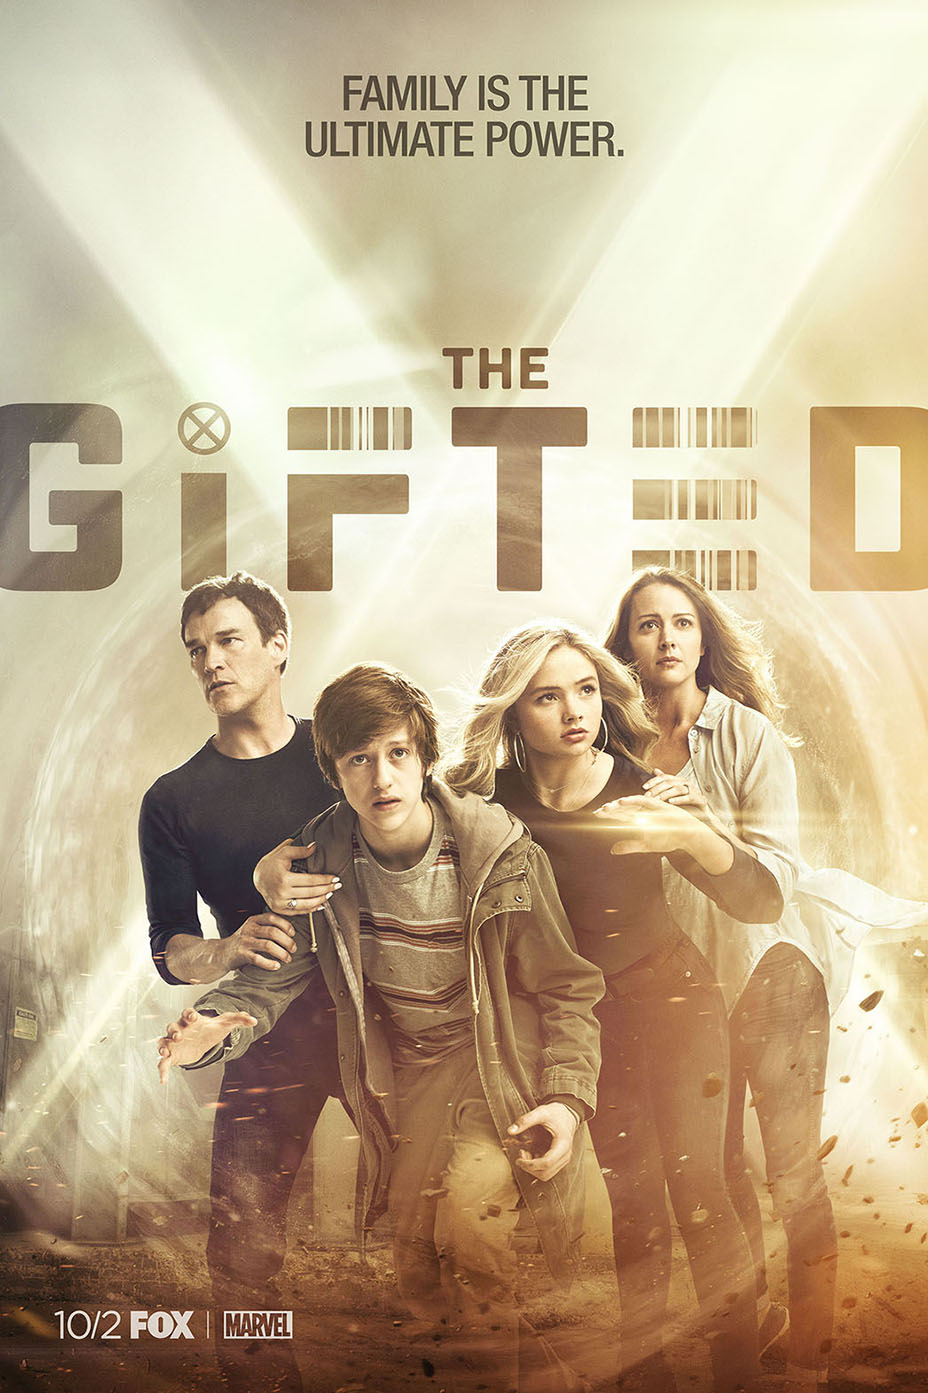 the-x-men-themed-series-the-gifted-gets-a-cool-extended-comic-con-trailer3